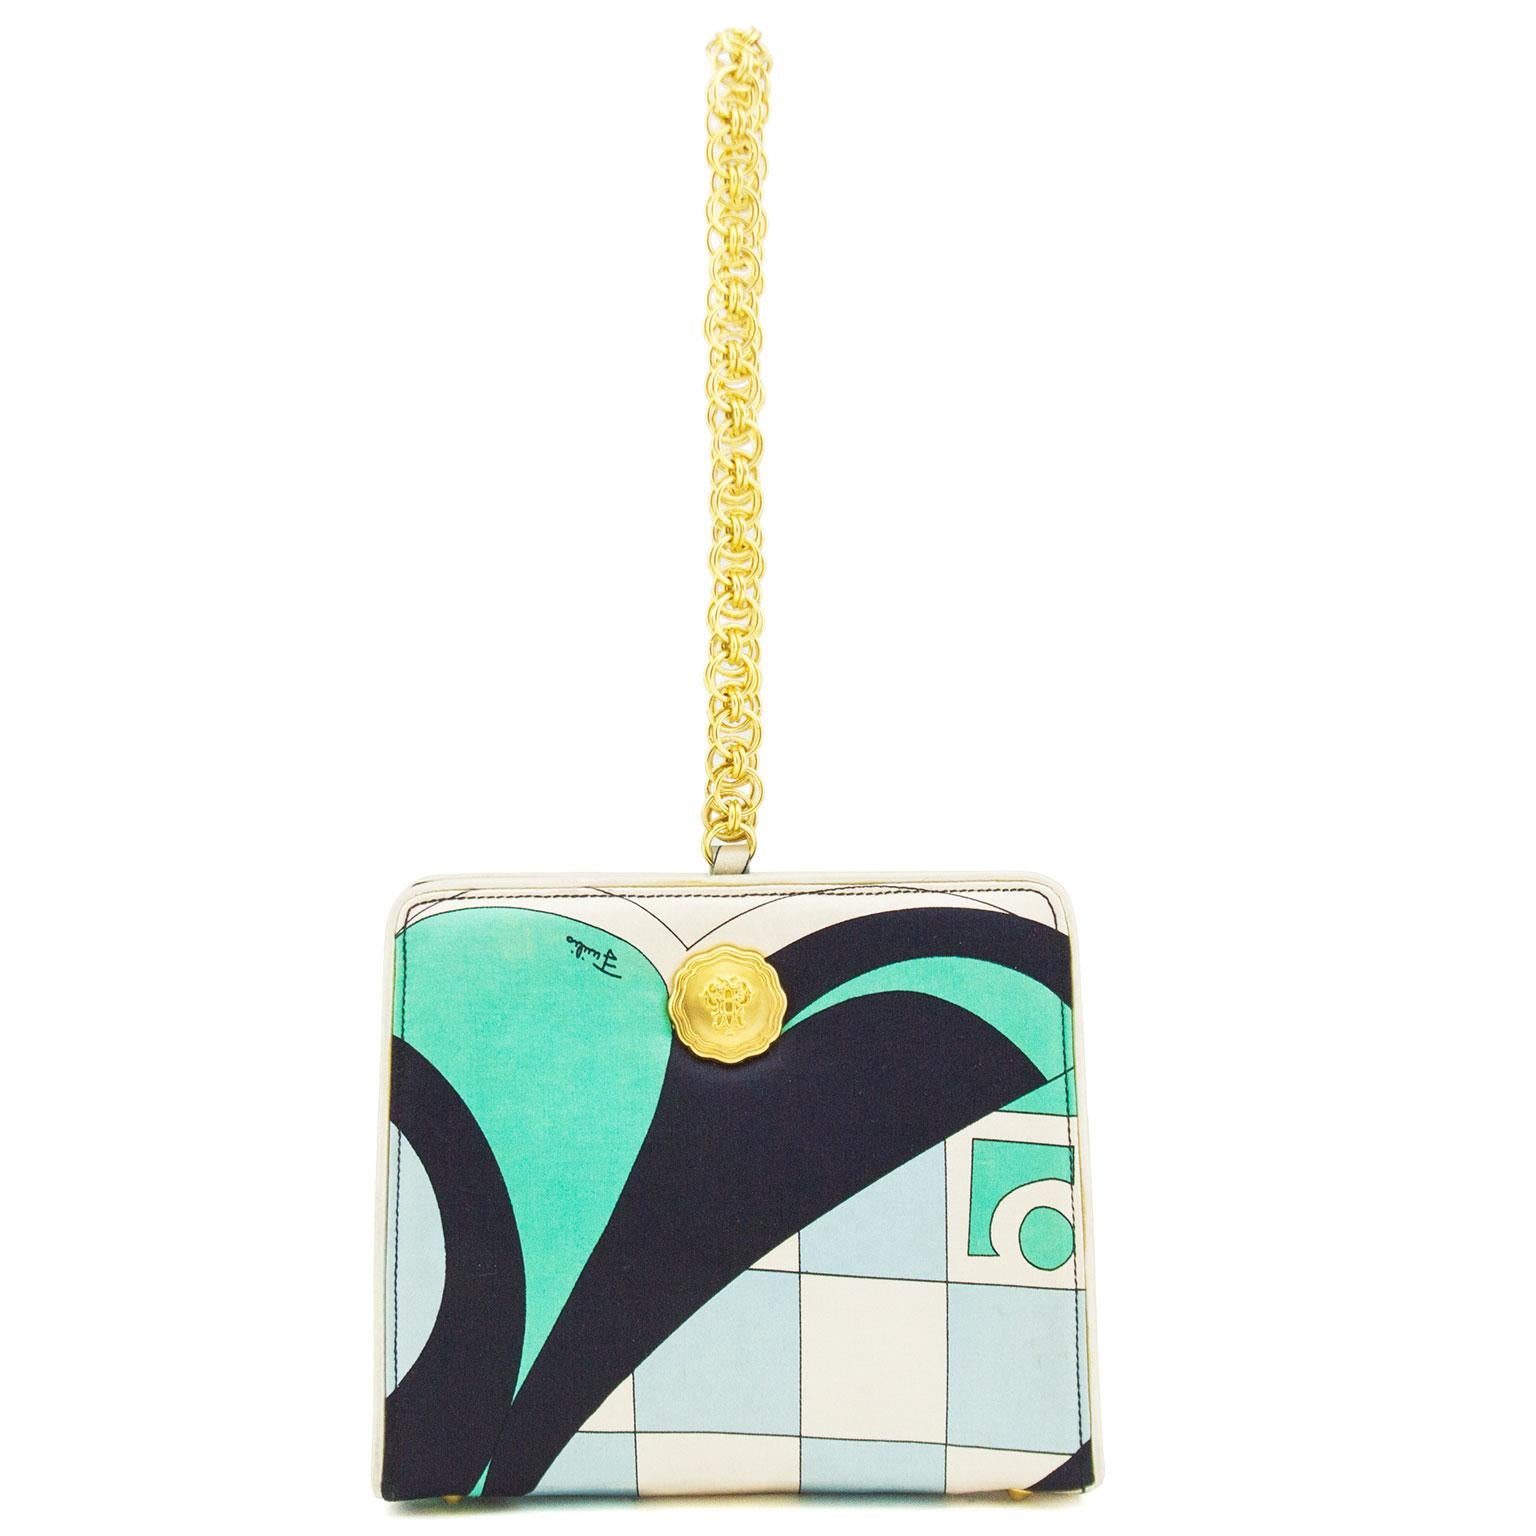 e8da1c4dfb9f 1960s Blue, Black Green and Cream Pucci Silk Wristlet Evening Bag For Sale  at 1stdibs